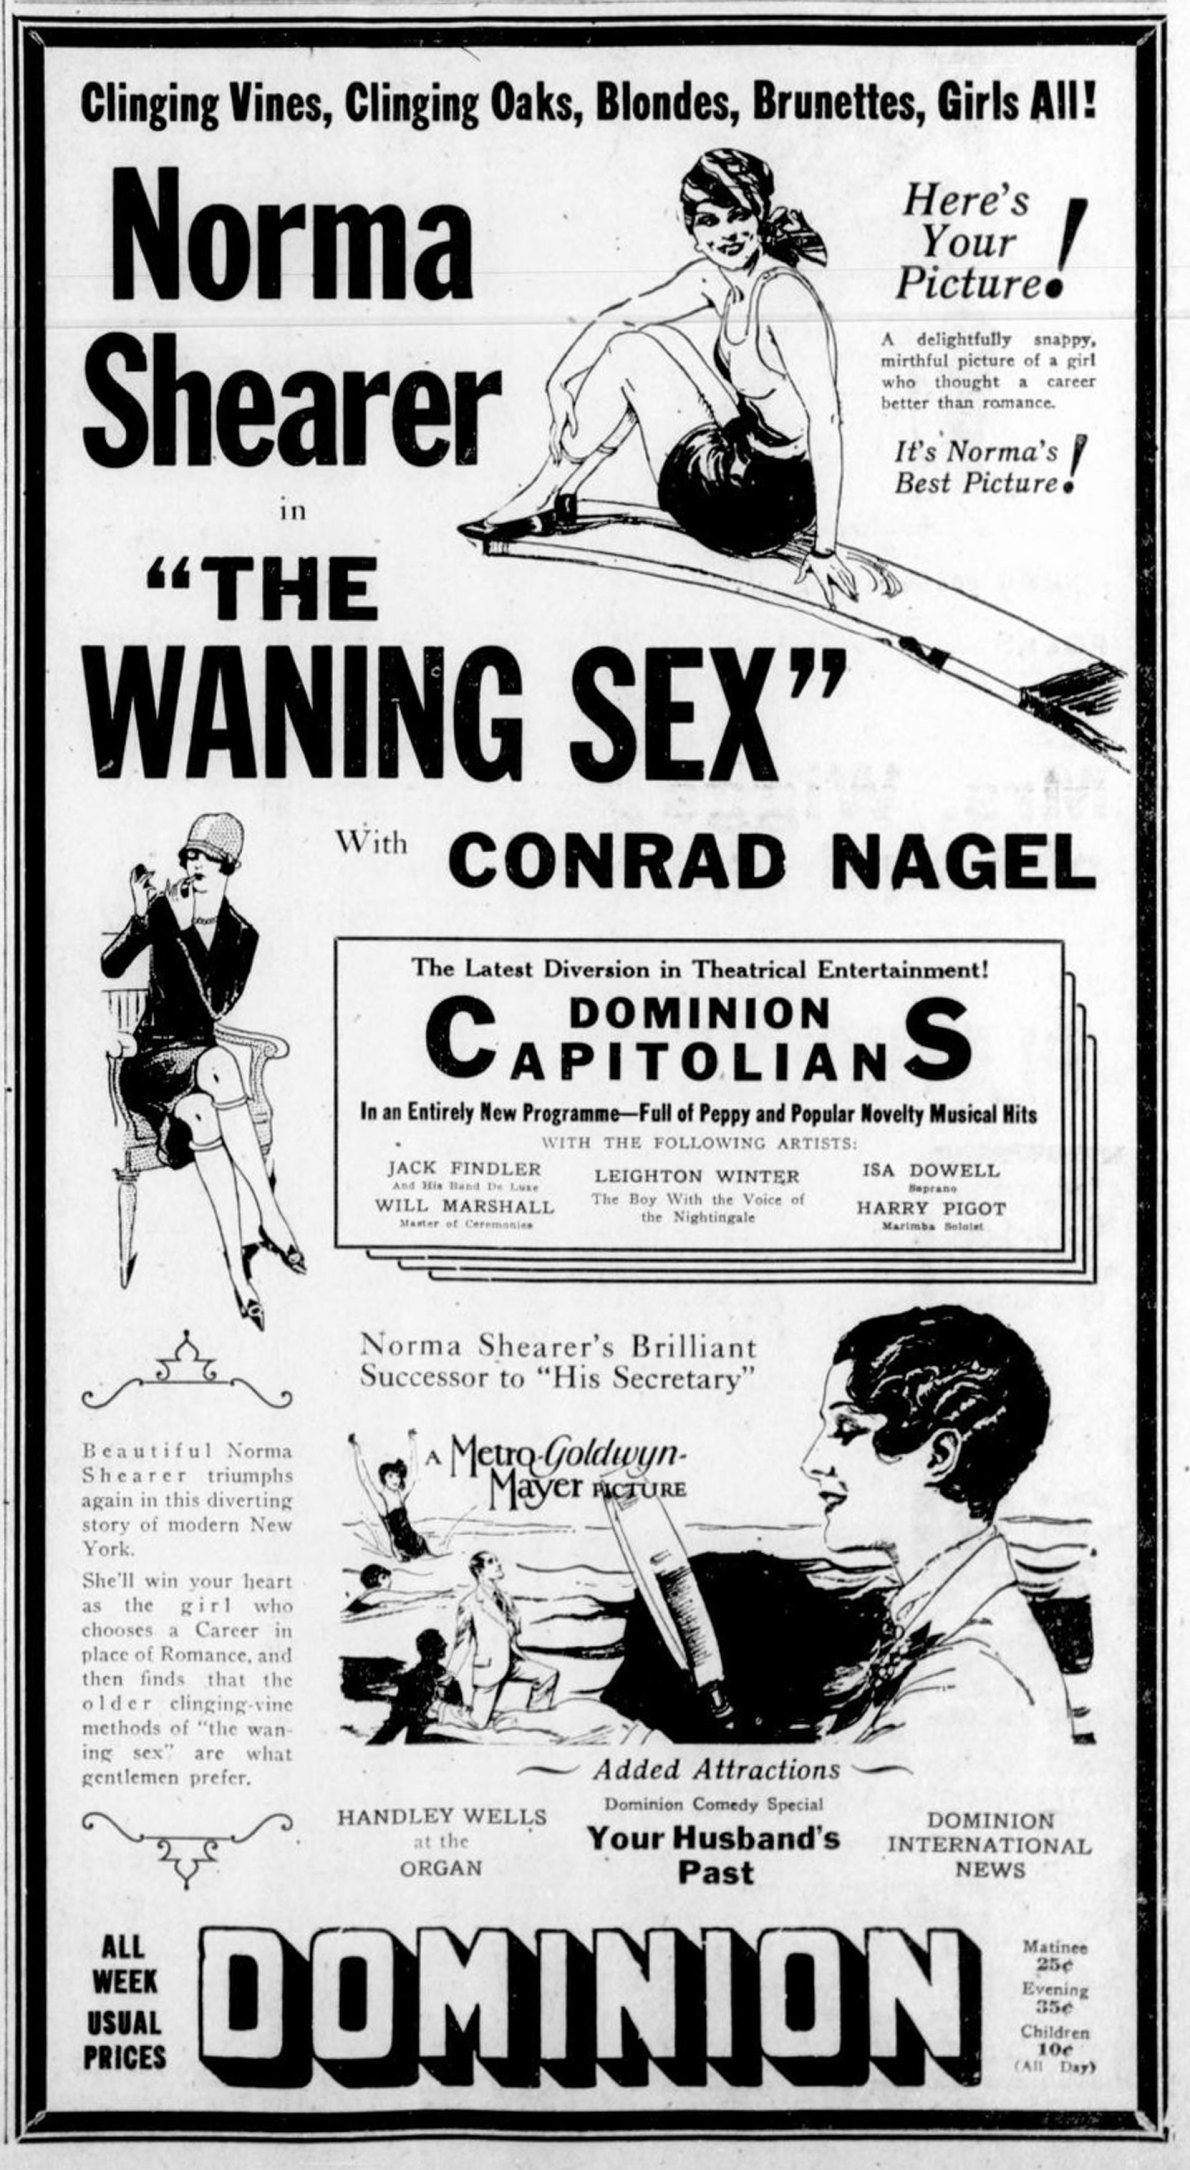 1926 advertisement for the Dominion Theatre, 816 Yates Street (now demolished). The feature is The Waning Sex, starring Norma Shearer. (Victoria Online Sightseeing Tours collection)